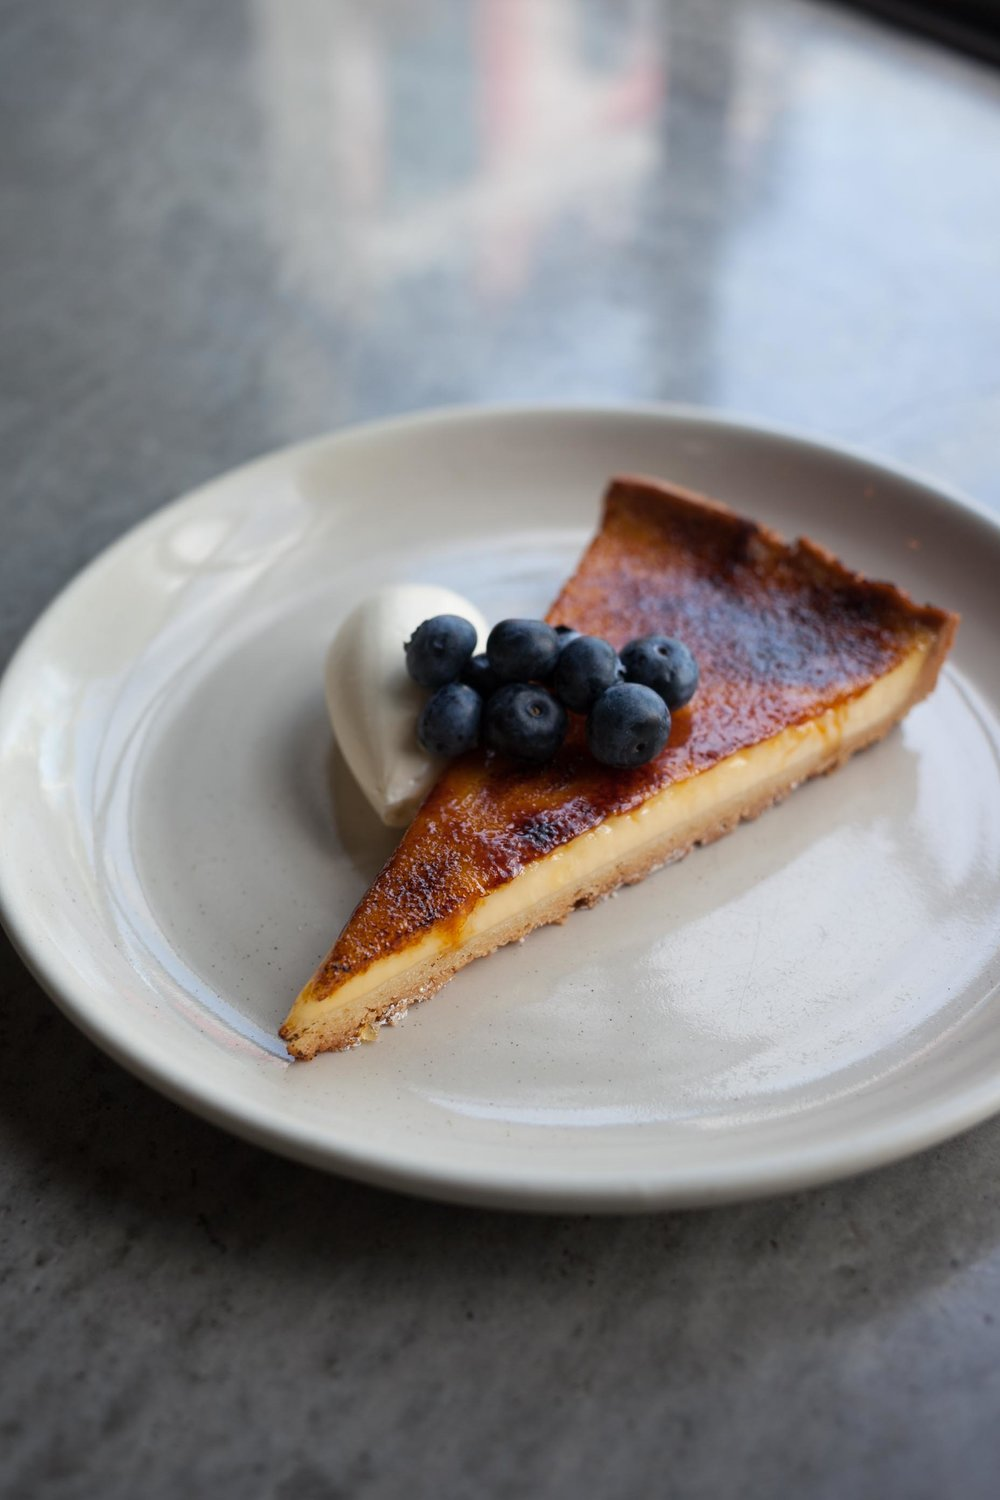 Glazed Lemon Tart with fresh blueberries